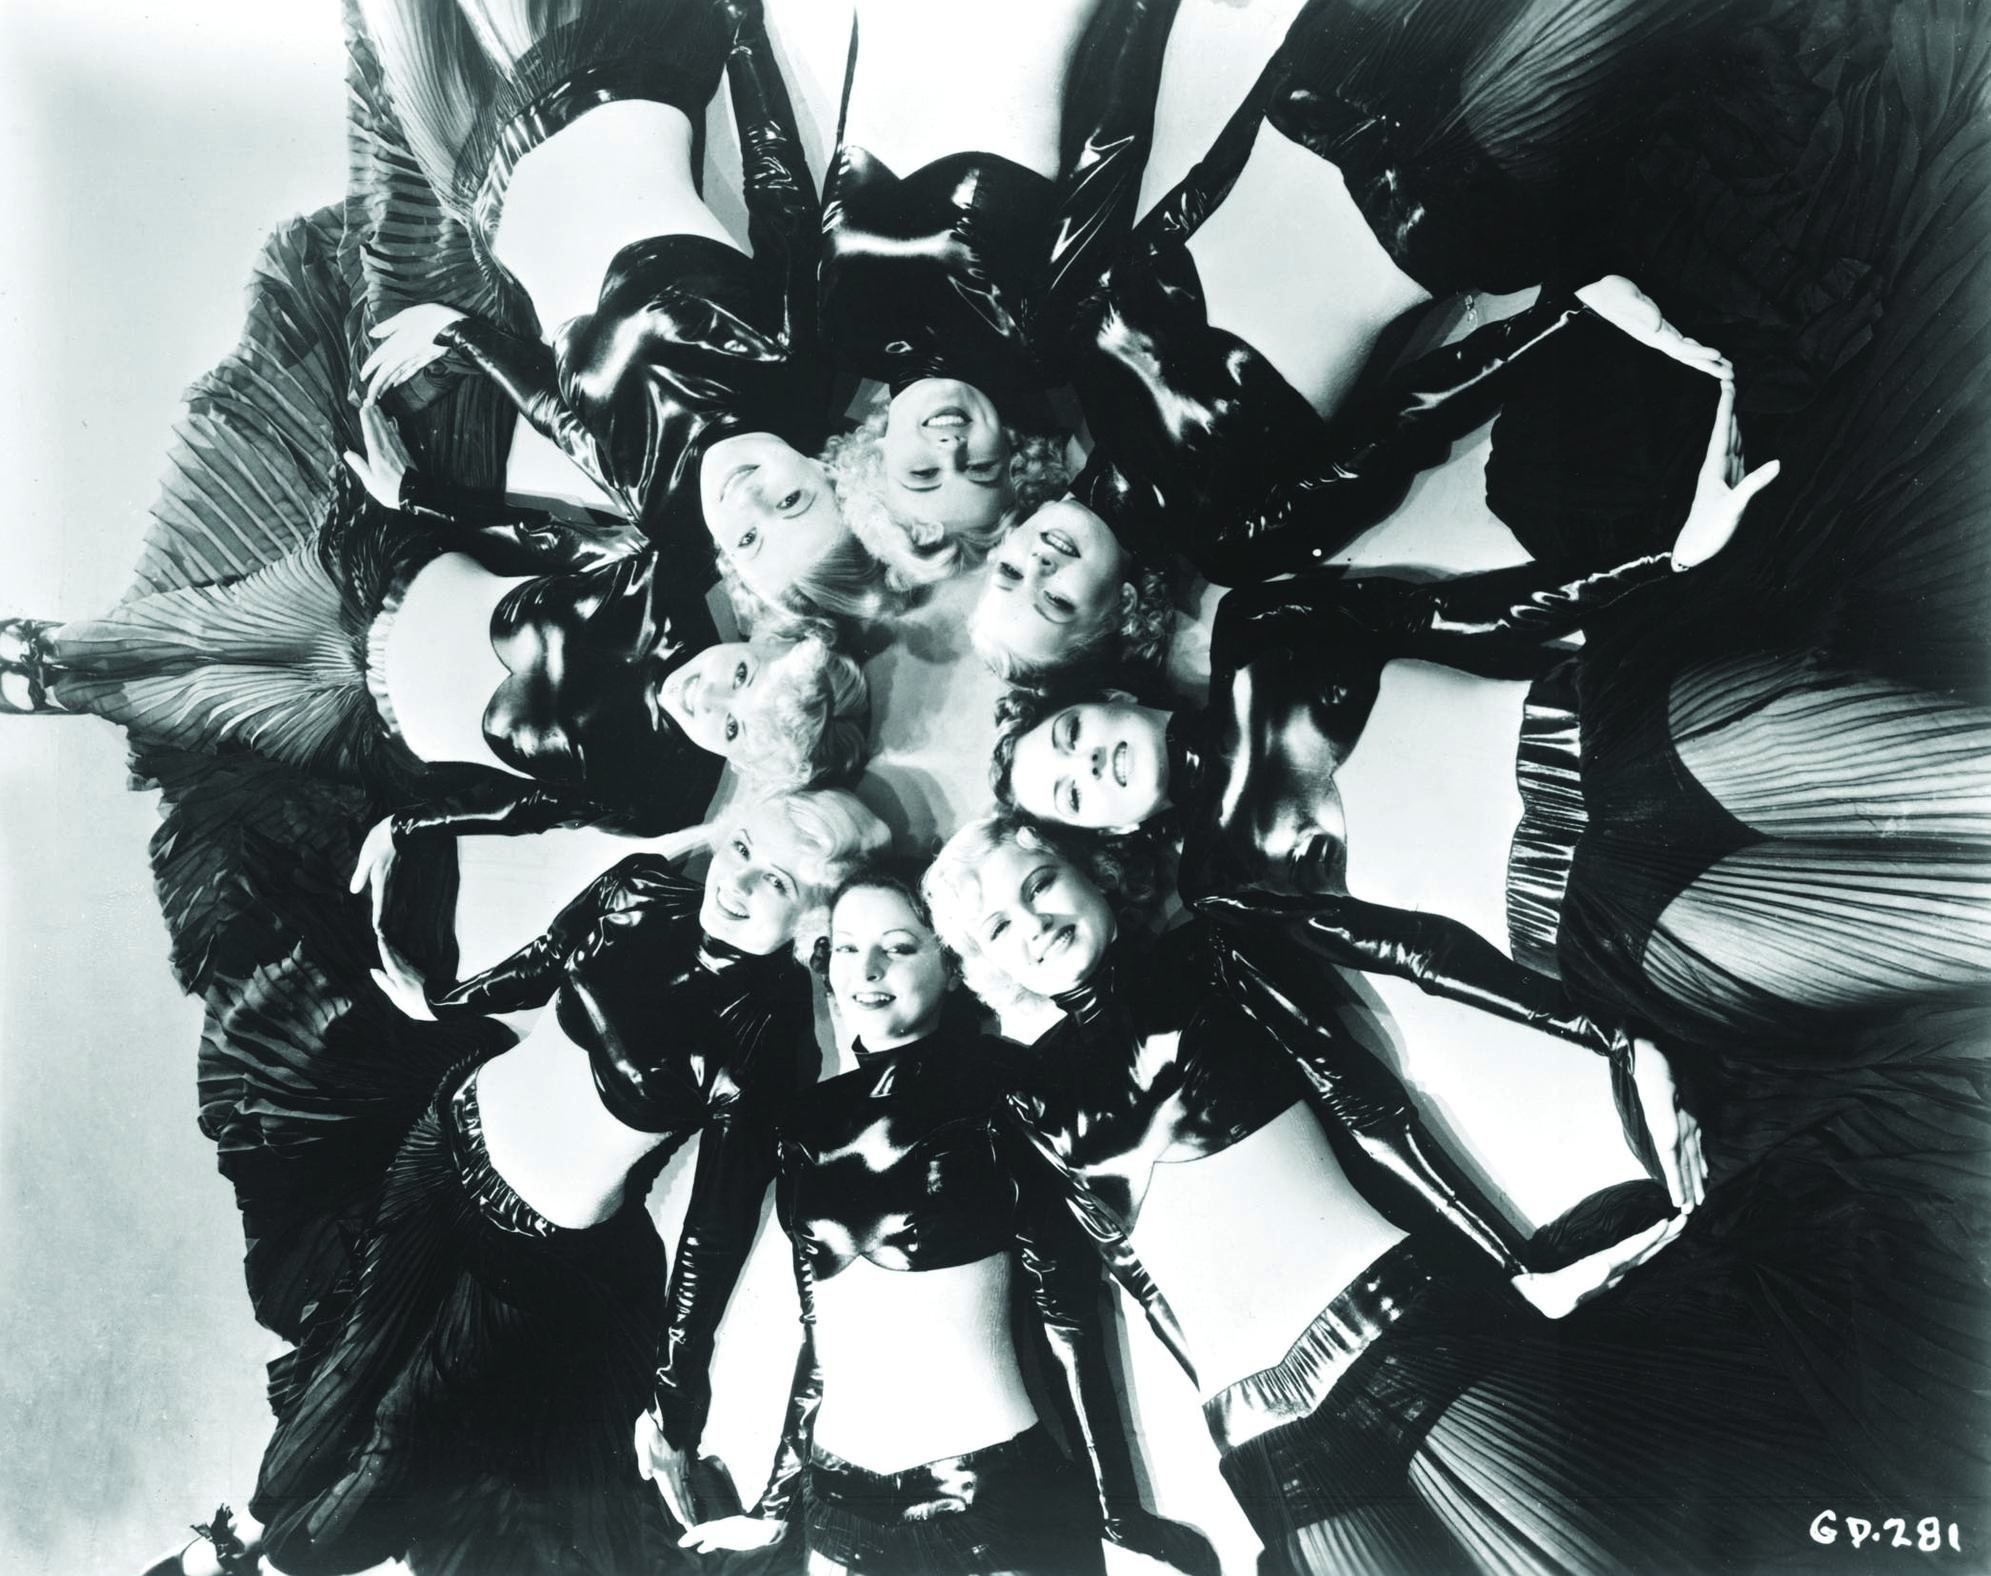 Ruth Eddings, June Glory, Peggy Graves, Virginia Grey, Emily LaRue, Ethelreda Leopold, Lois Lindsay, and Marie Marks in Gold Diggers of 1935 (1935)